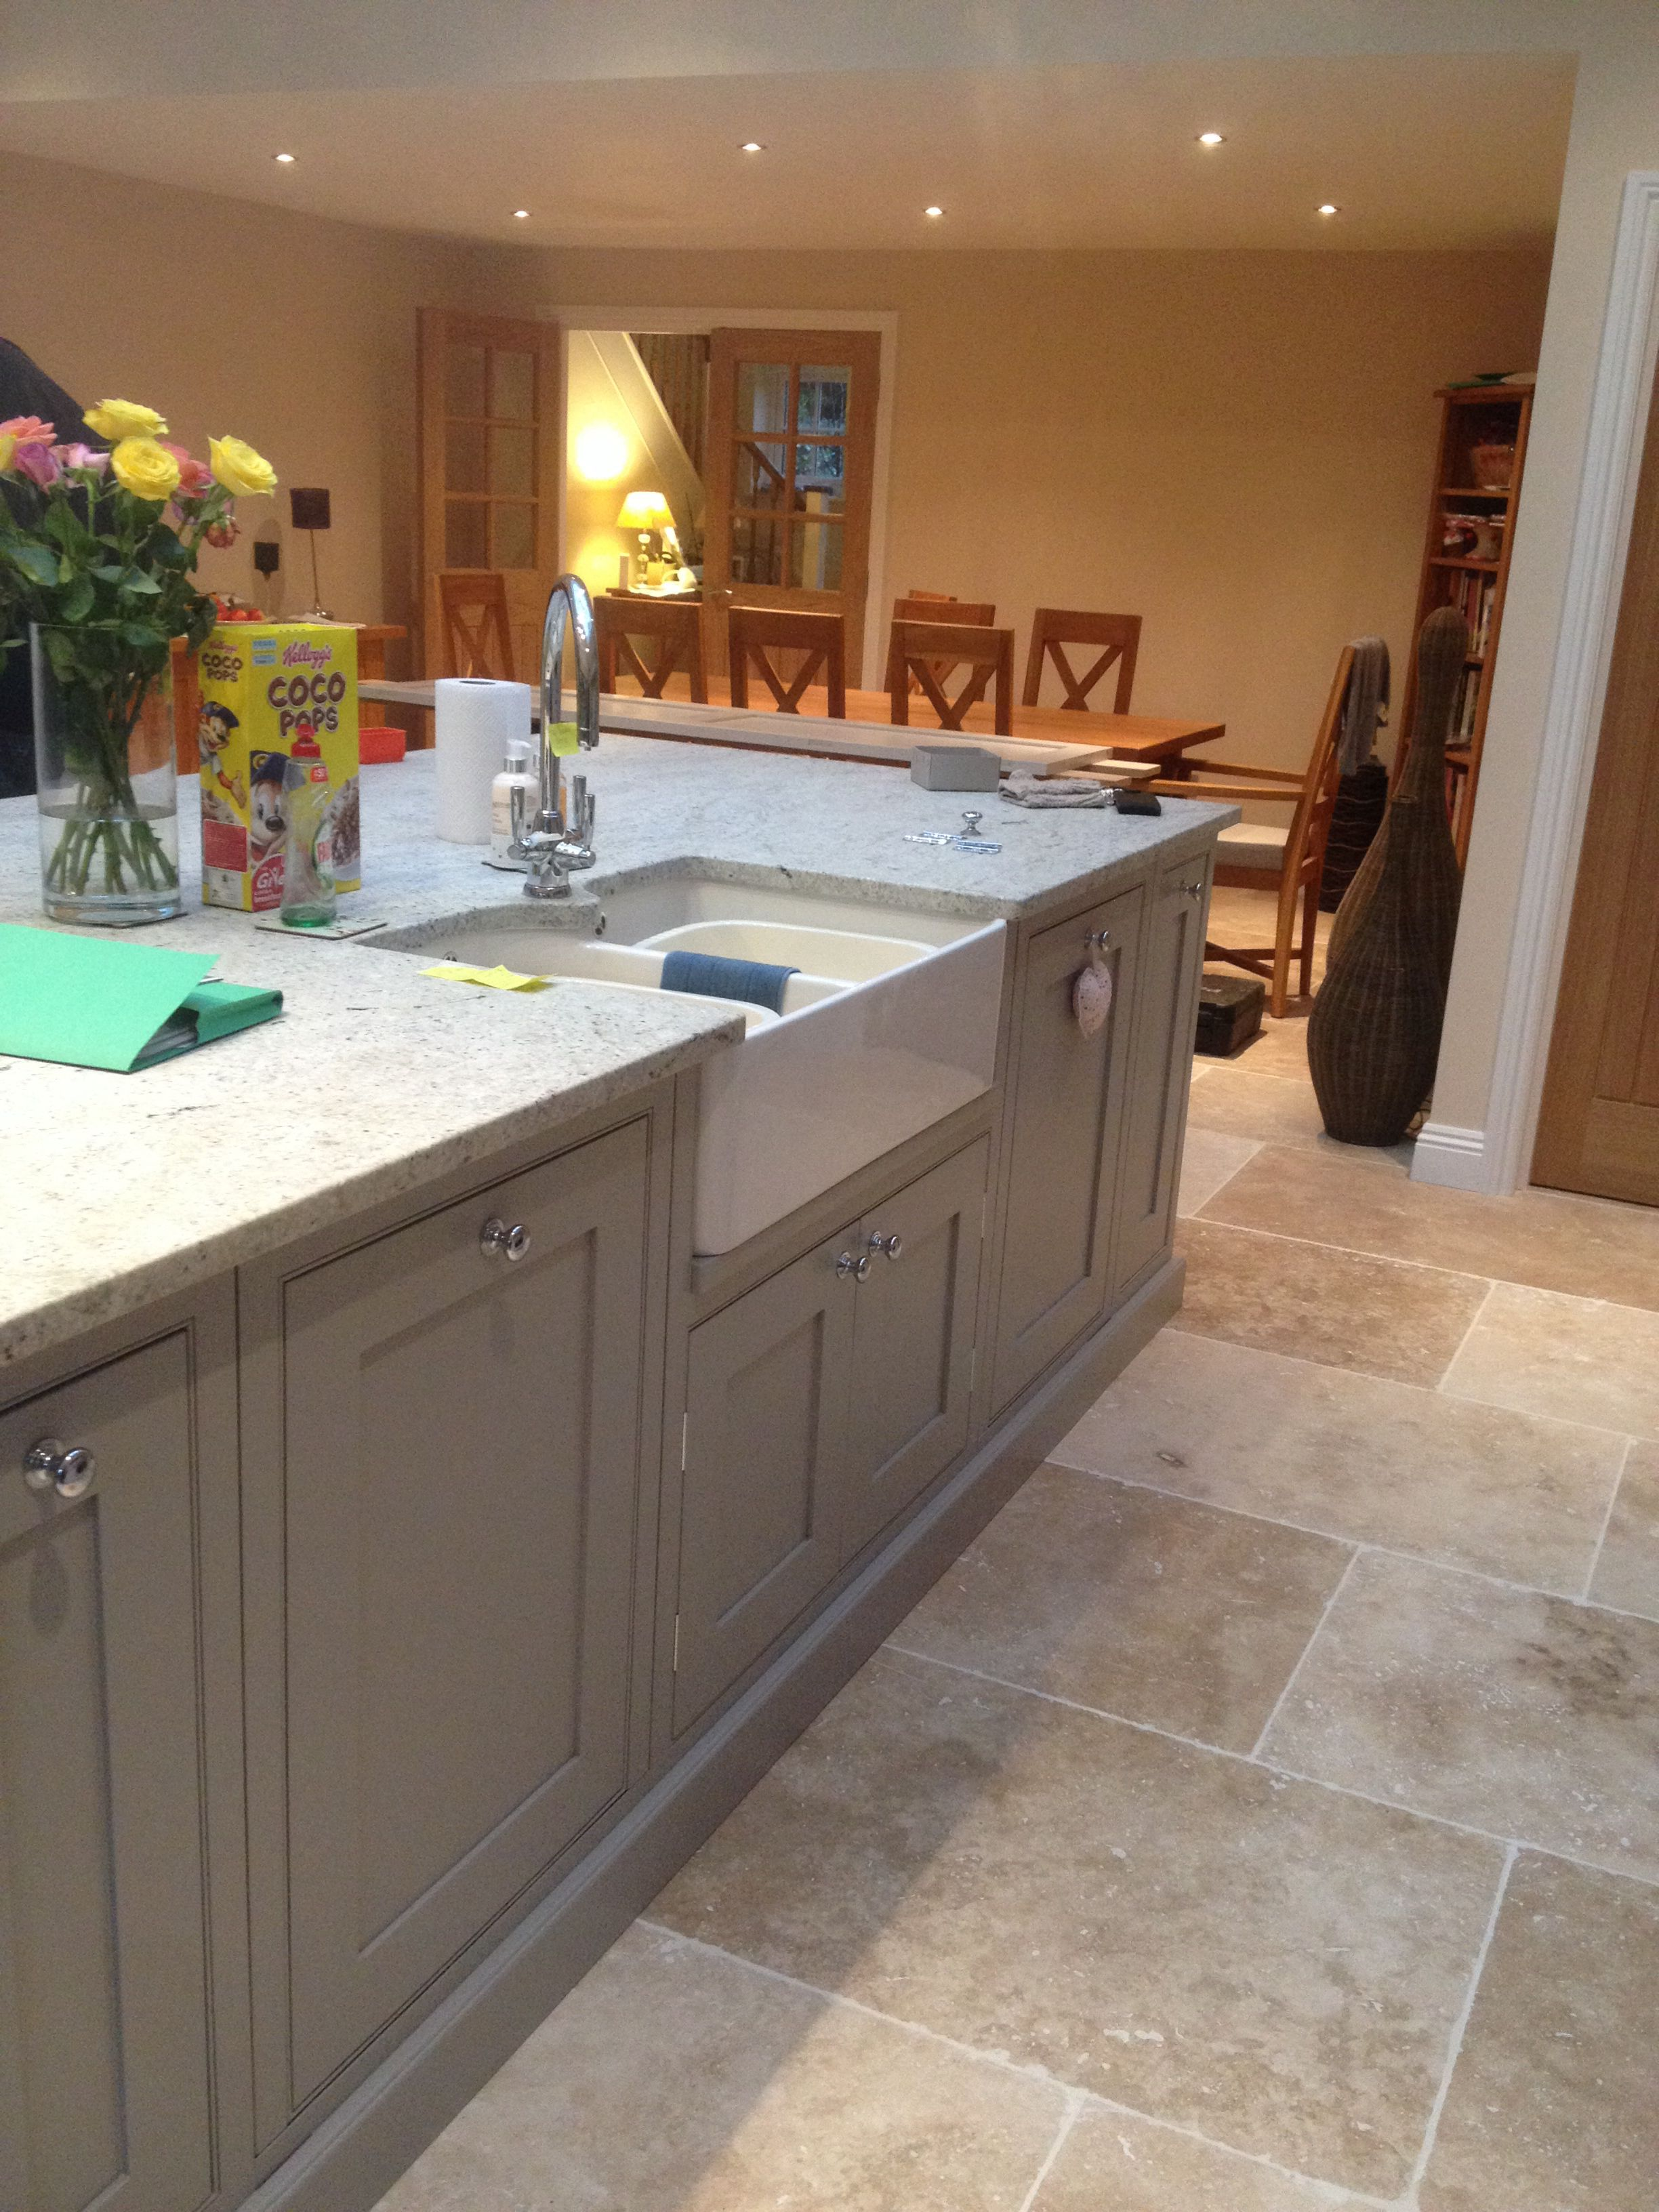 Large Island Unit With Integrated Dishwashers And Belfast